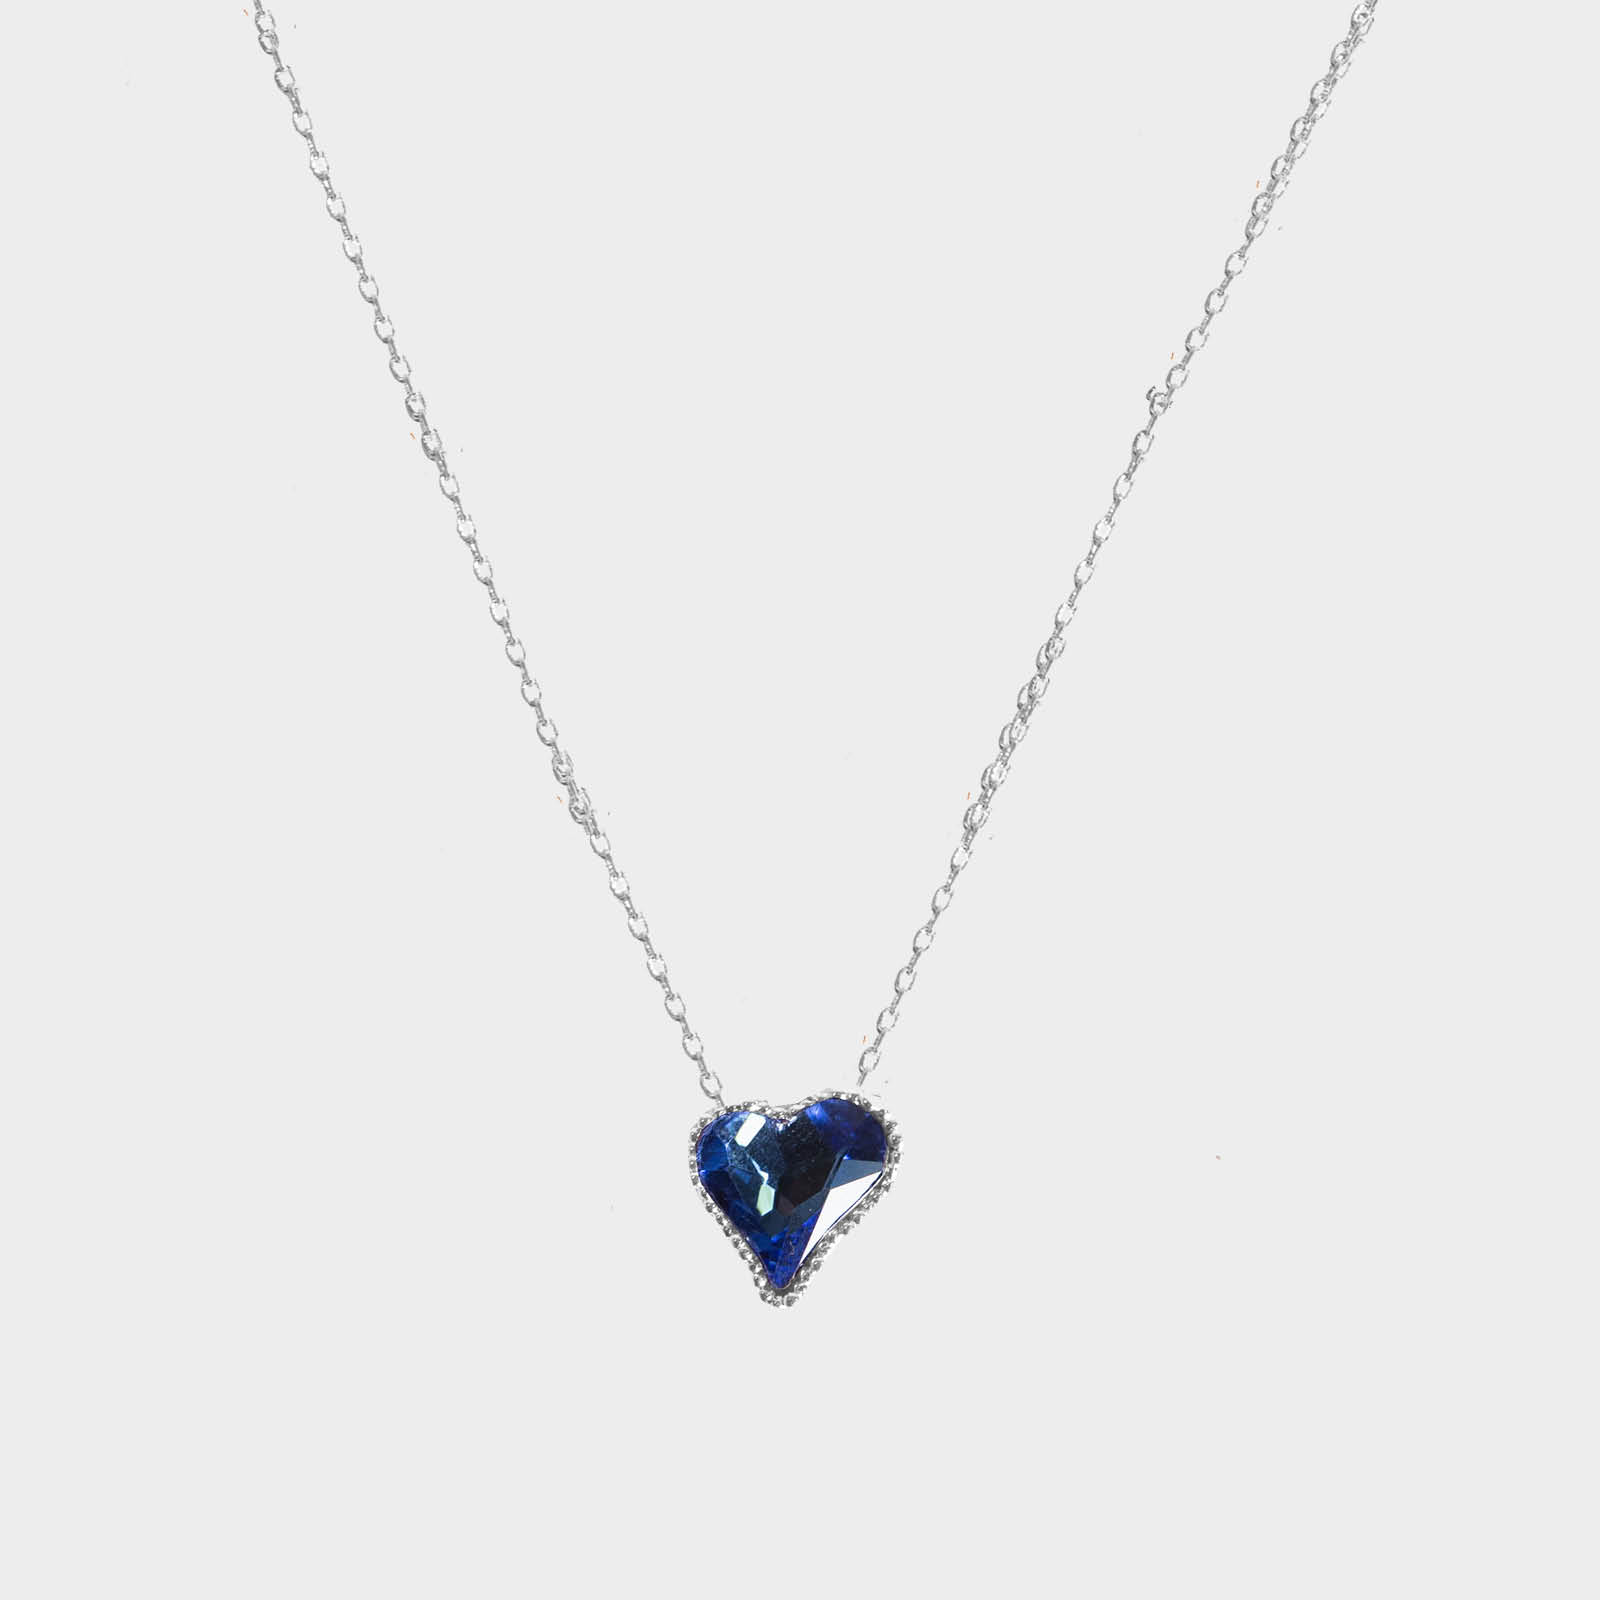 Single Blue Heart Necklace